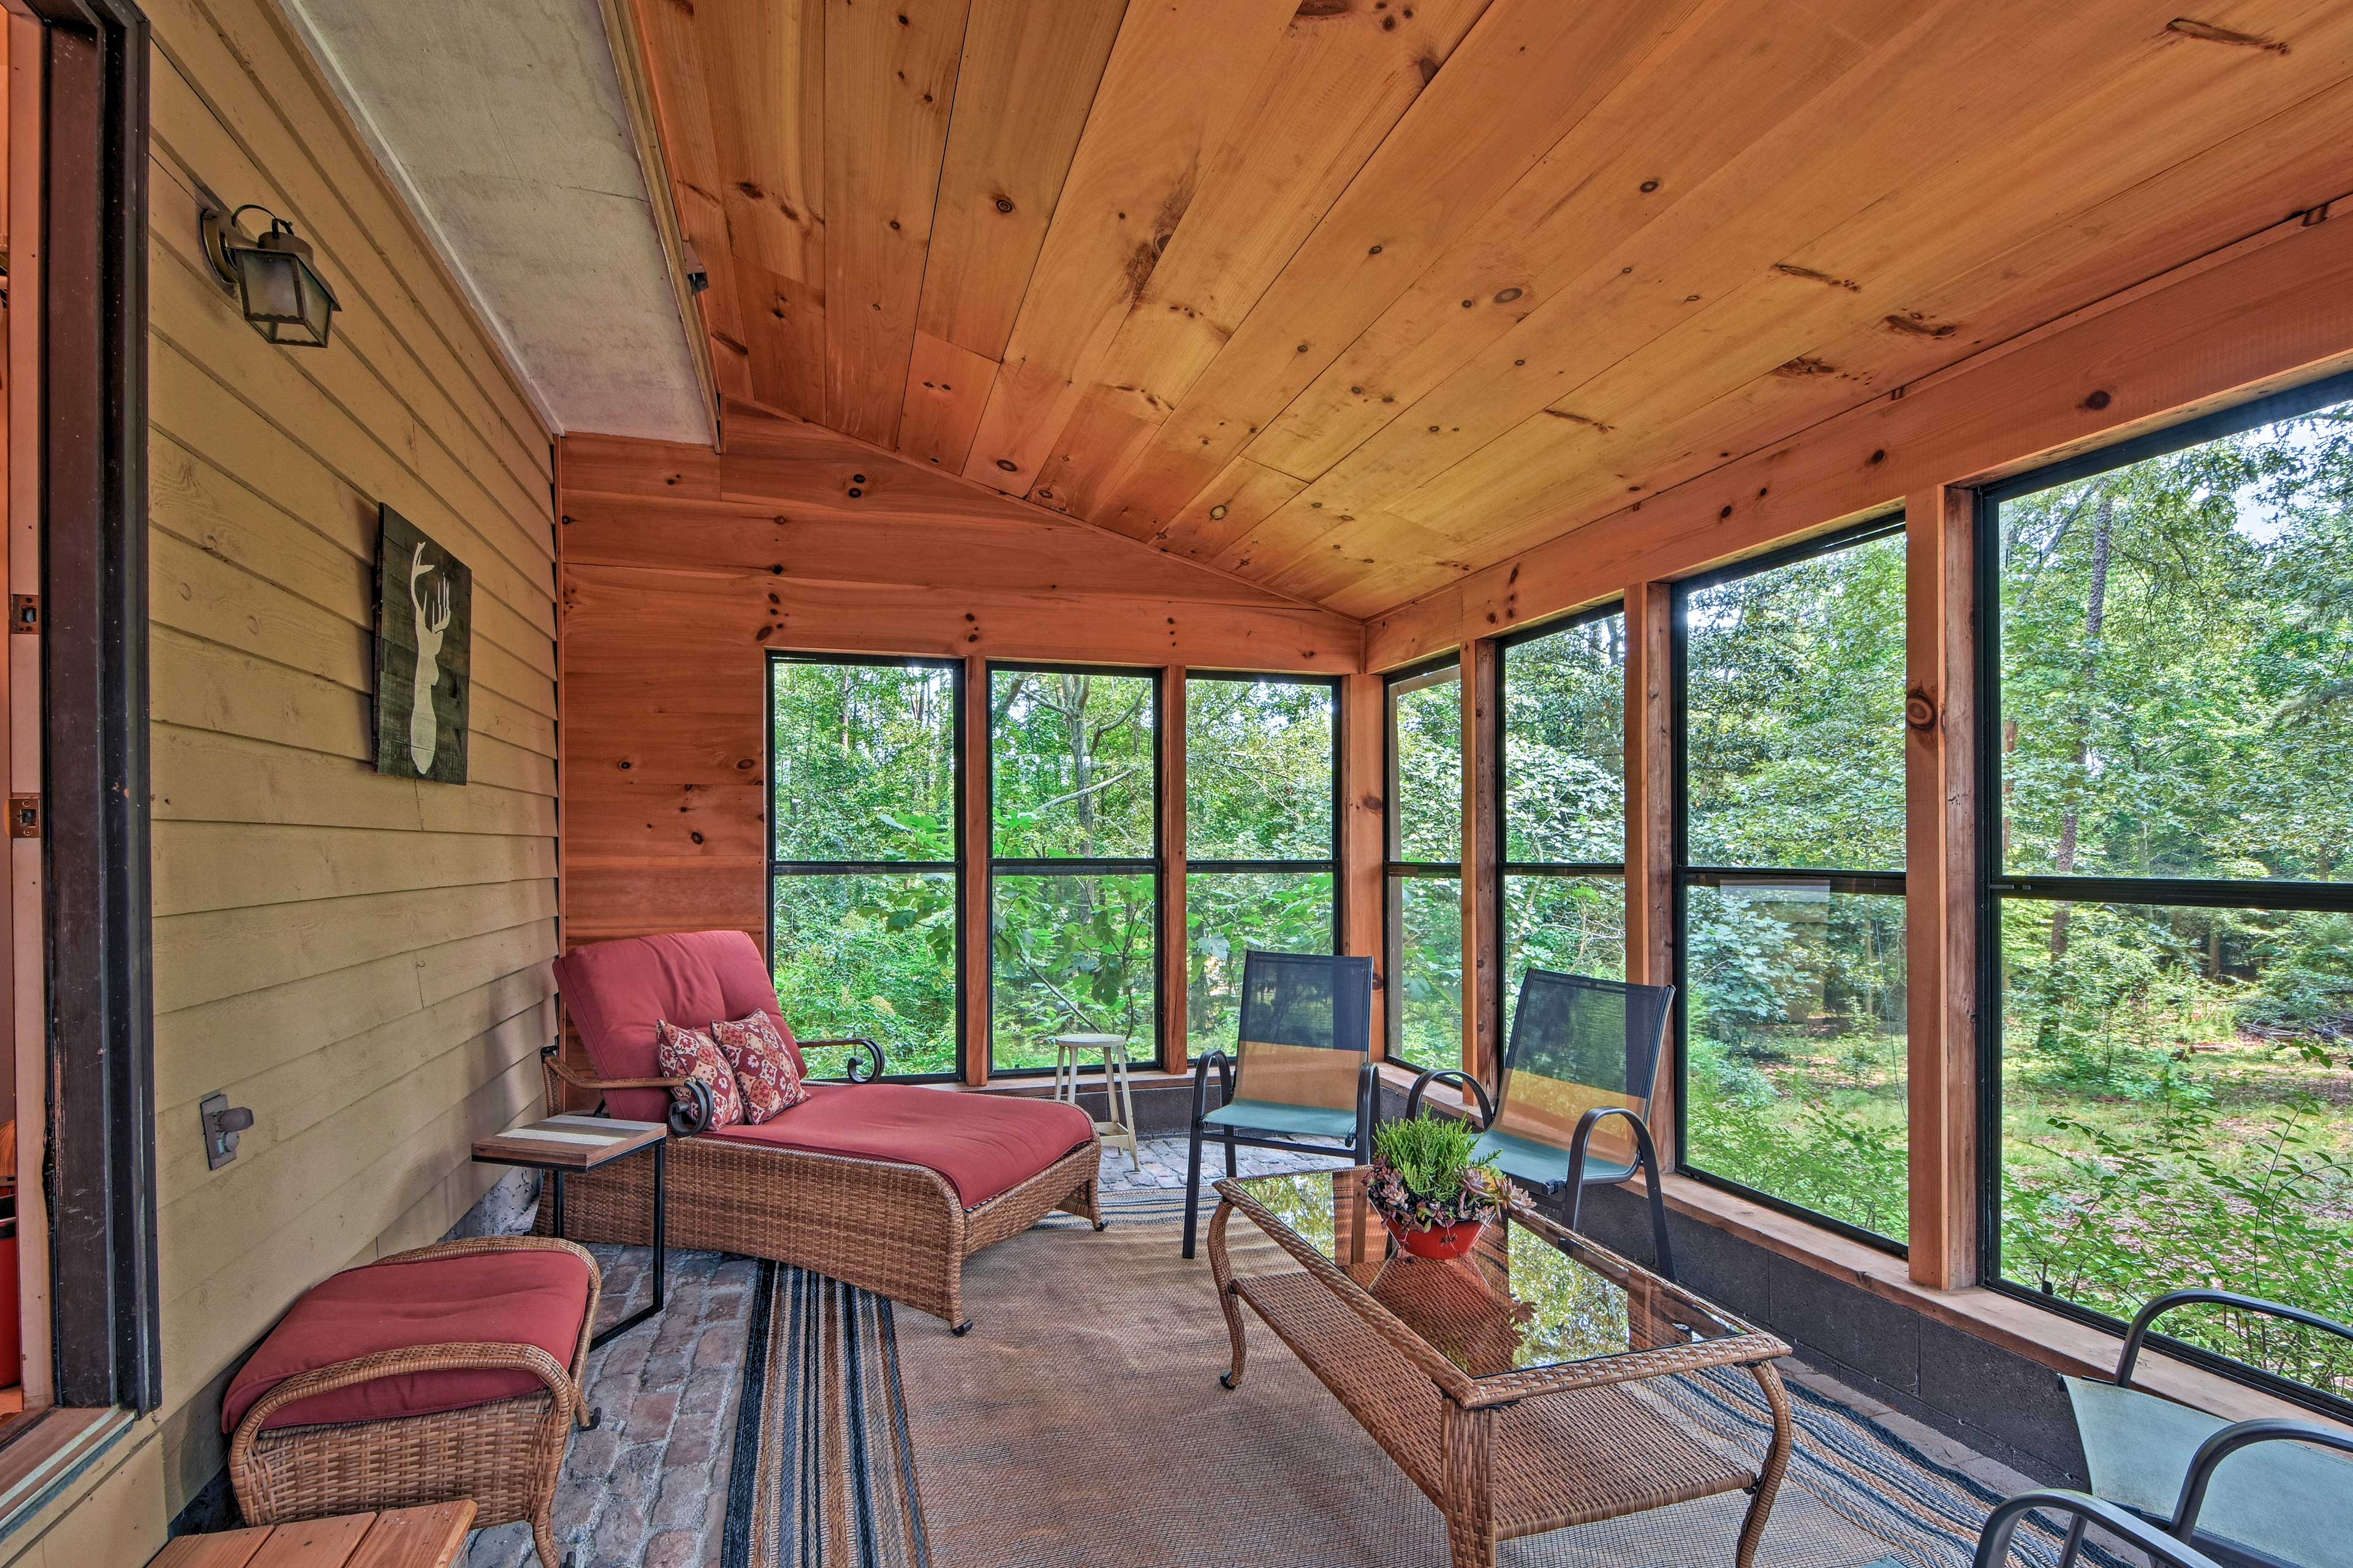 Curl up with a good book in the comfortable sunroom.